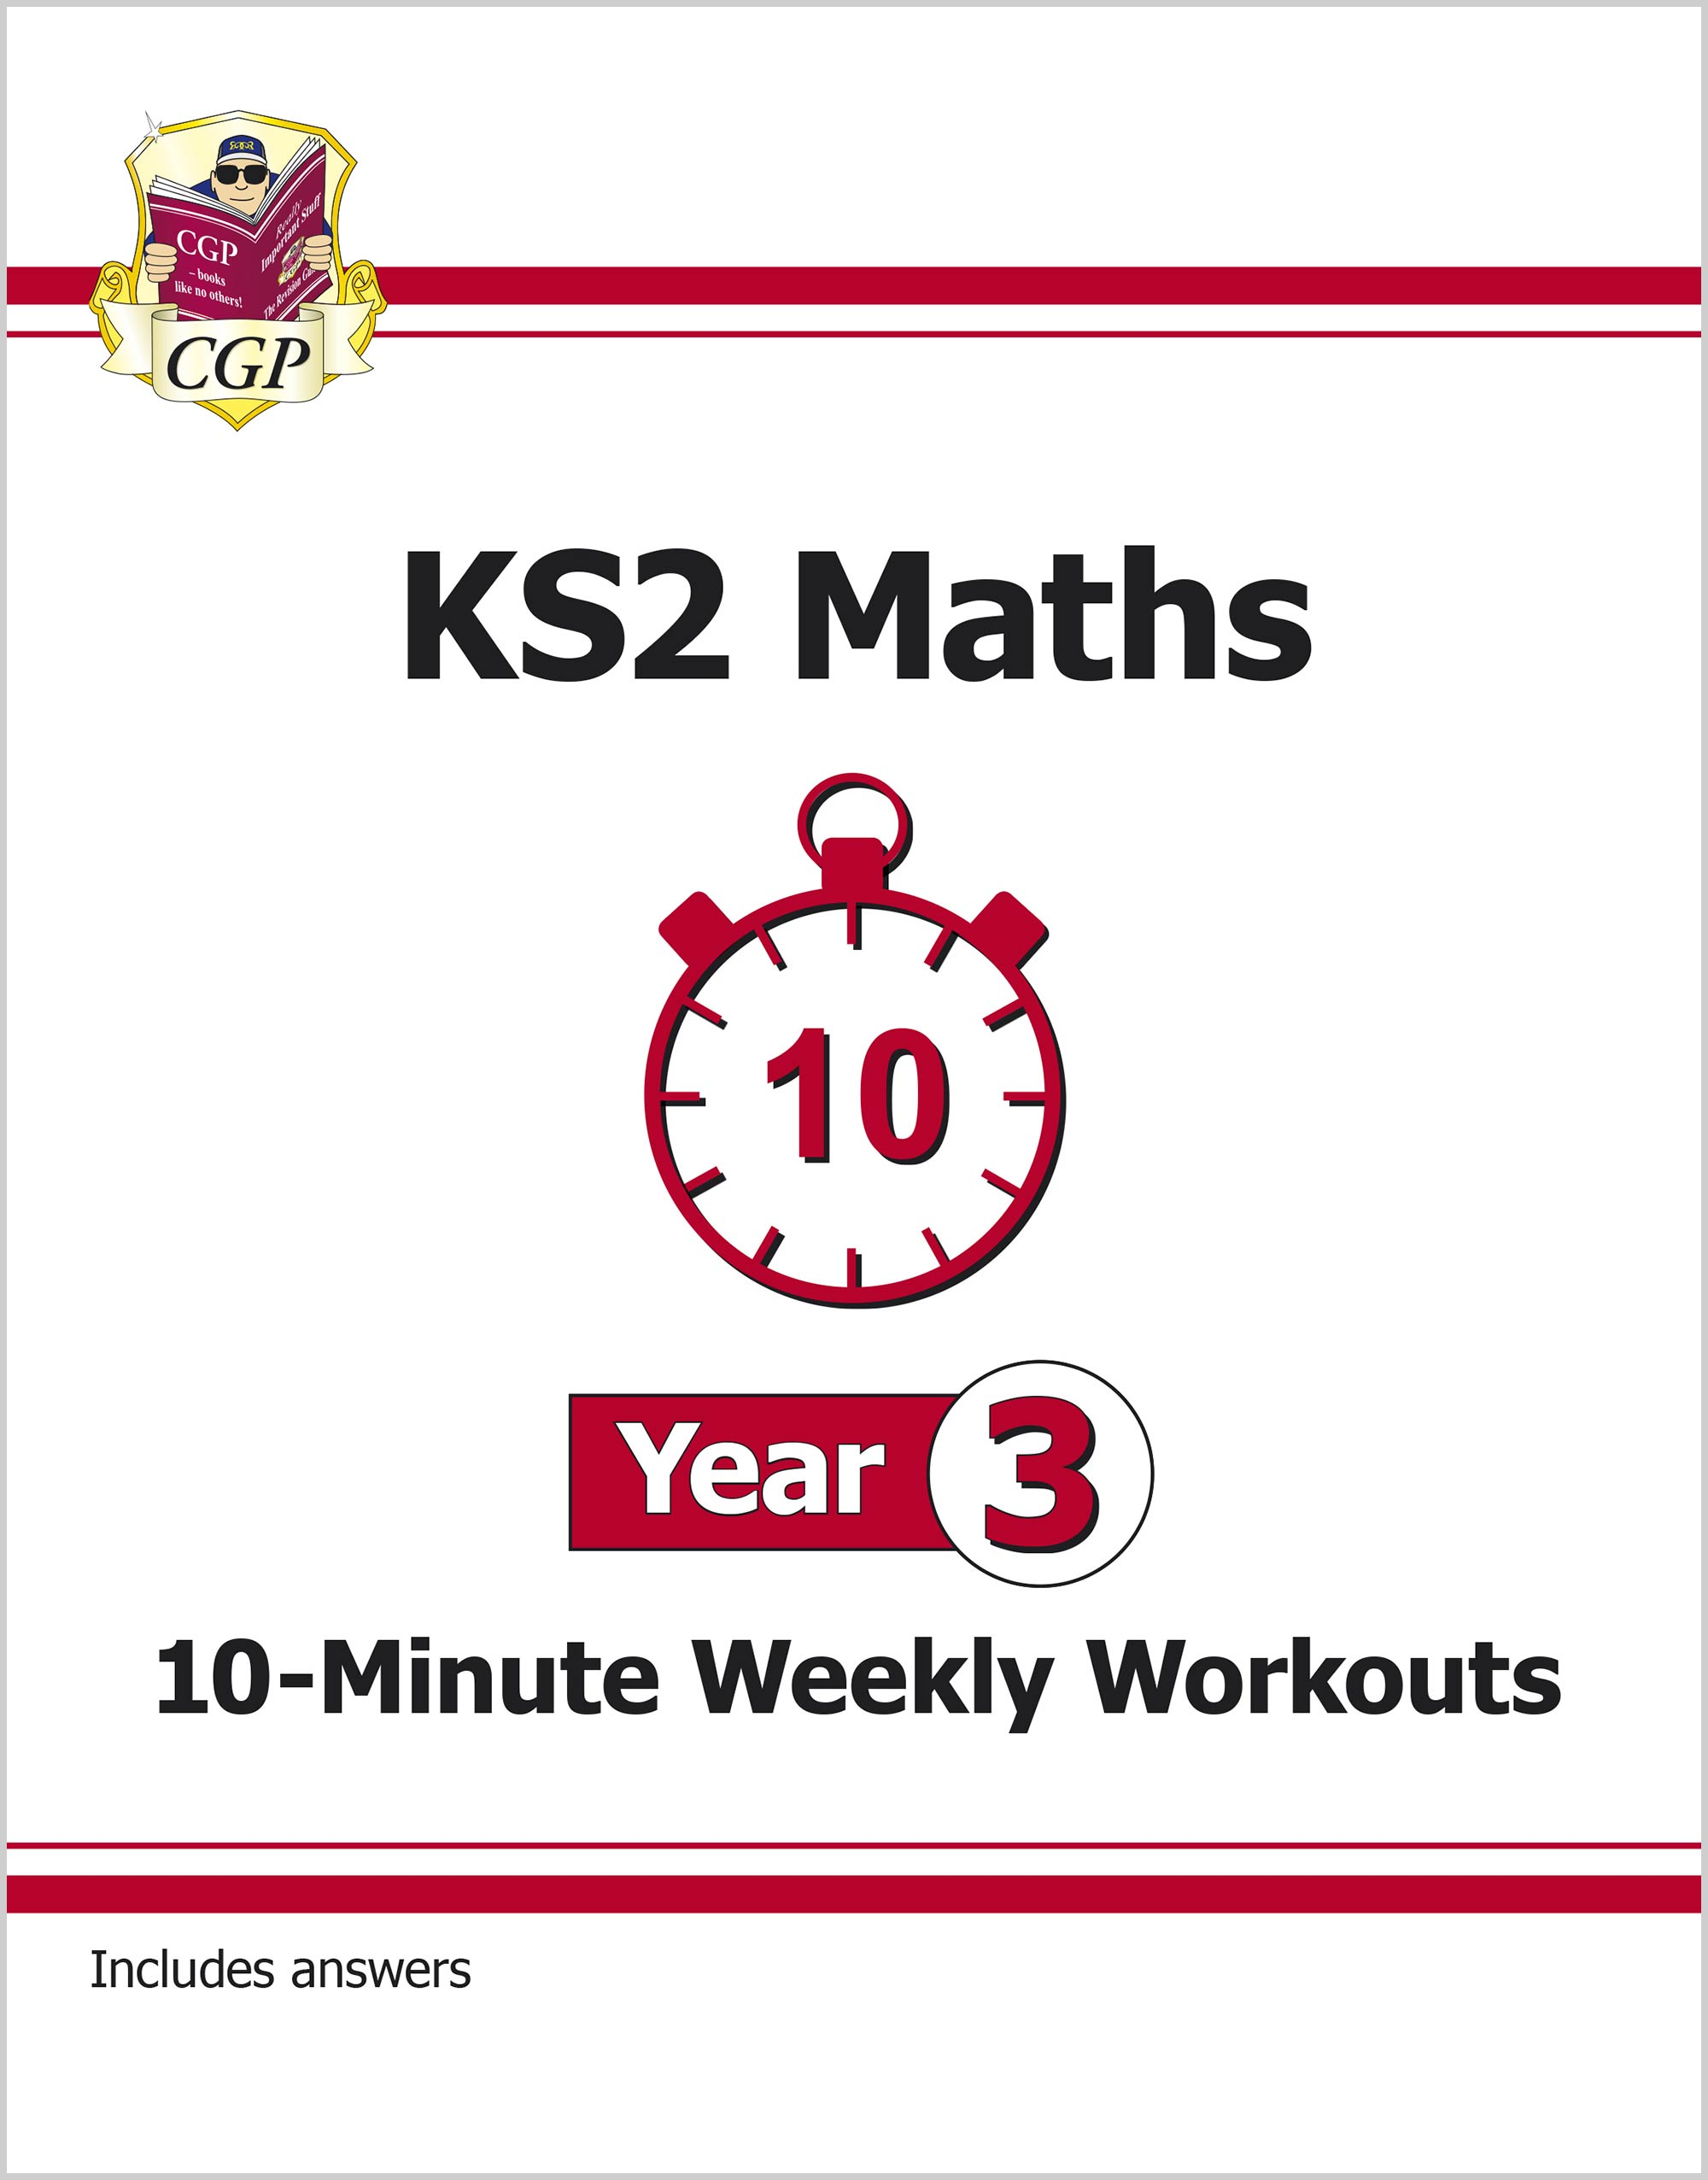 M3XW21DK - New KS2 Maths 10-Minute Weekly Workouts - Year 3